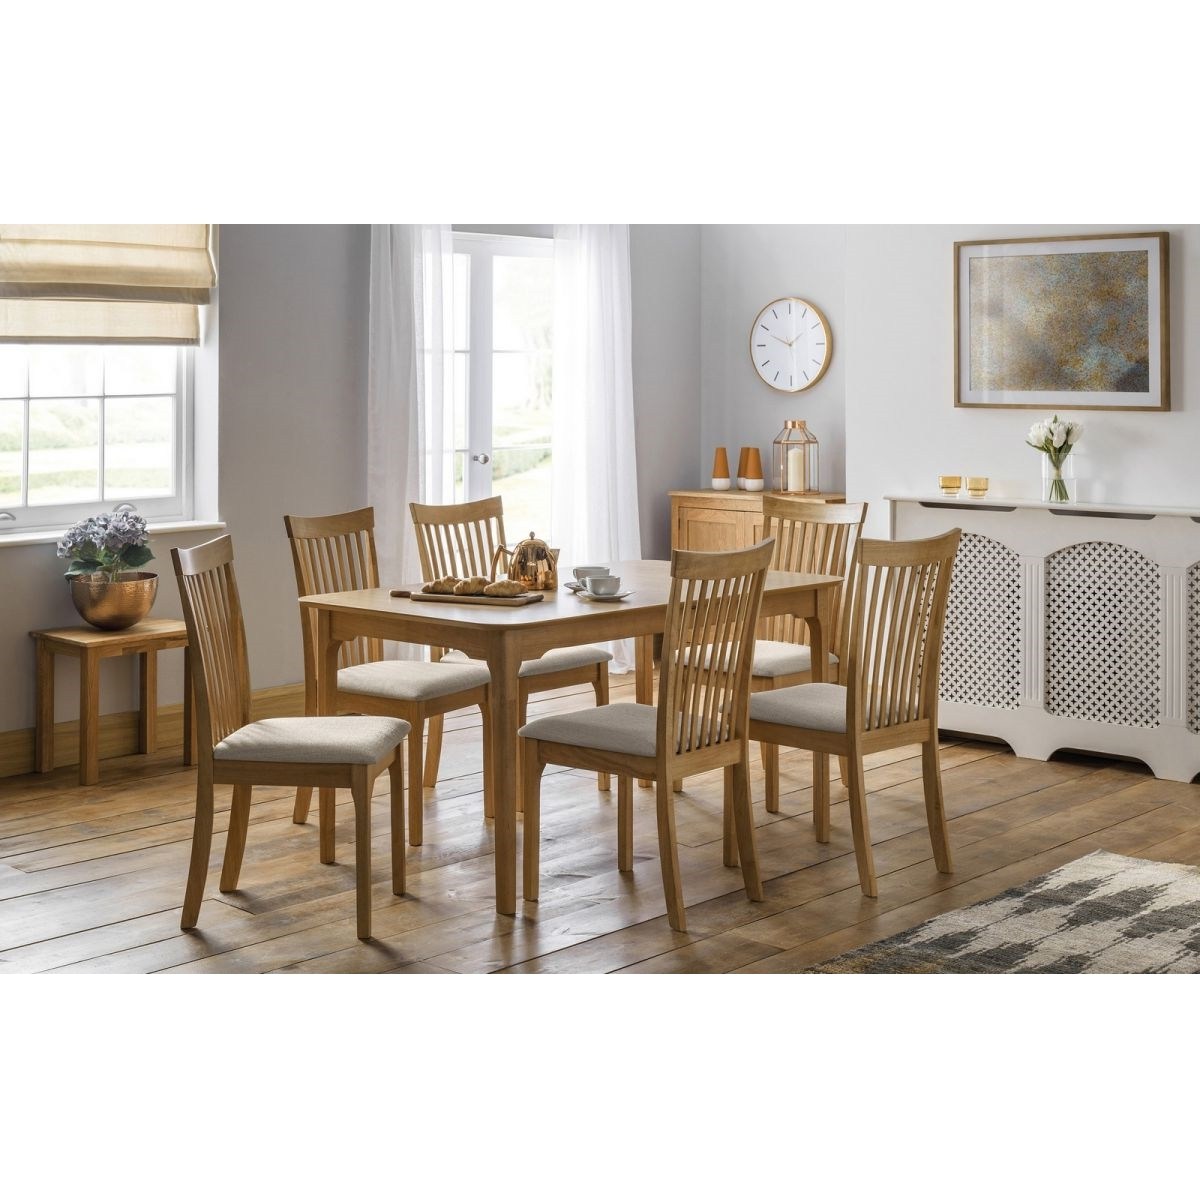 Widely Used Oak Dining Tables With 6 Chairs Regarding Naples Extending Oak Dining Table Set With 6 Chairs – Furnicomp (View 23 of 25)